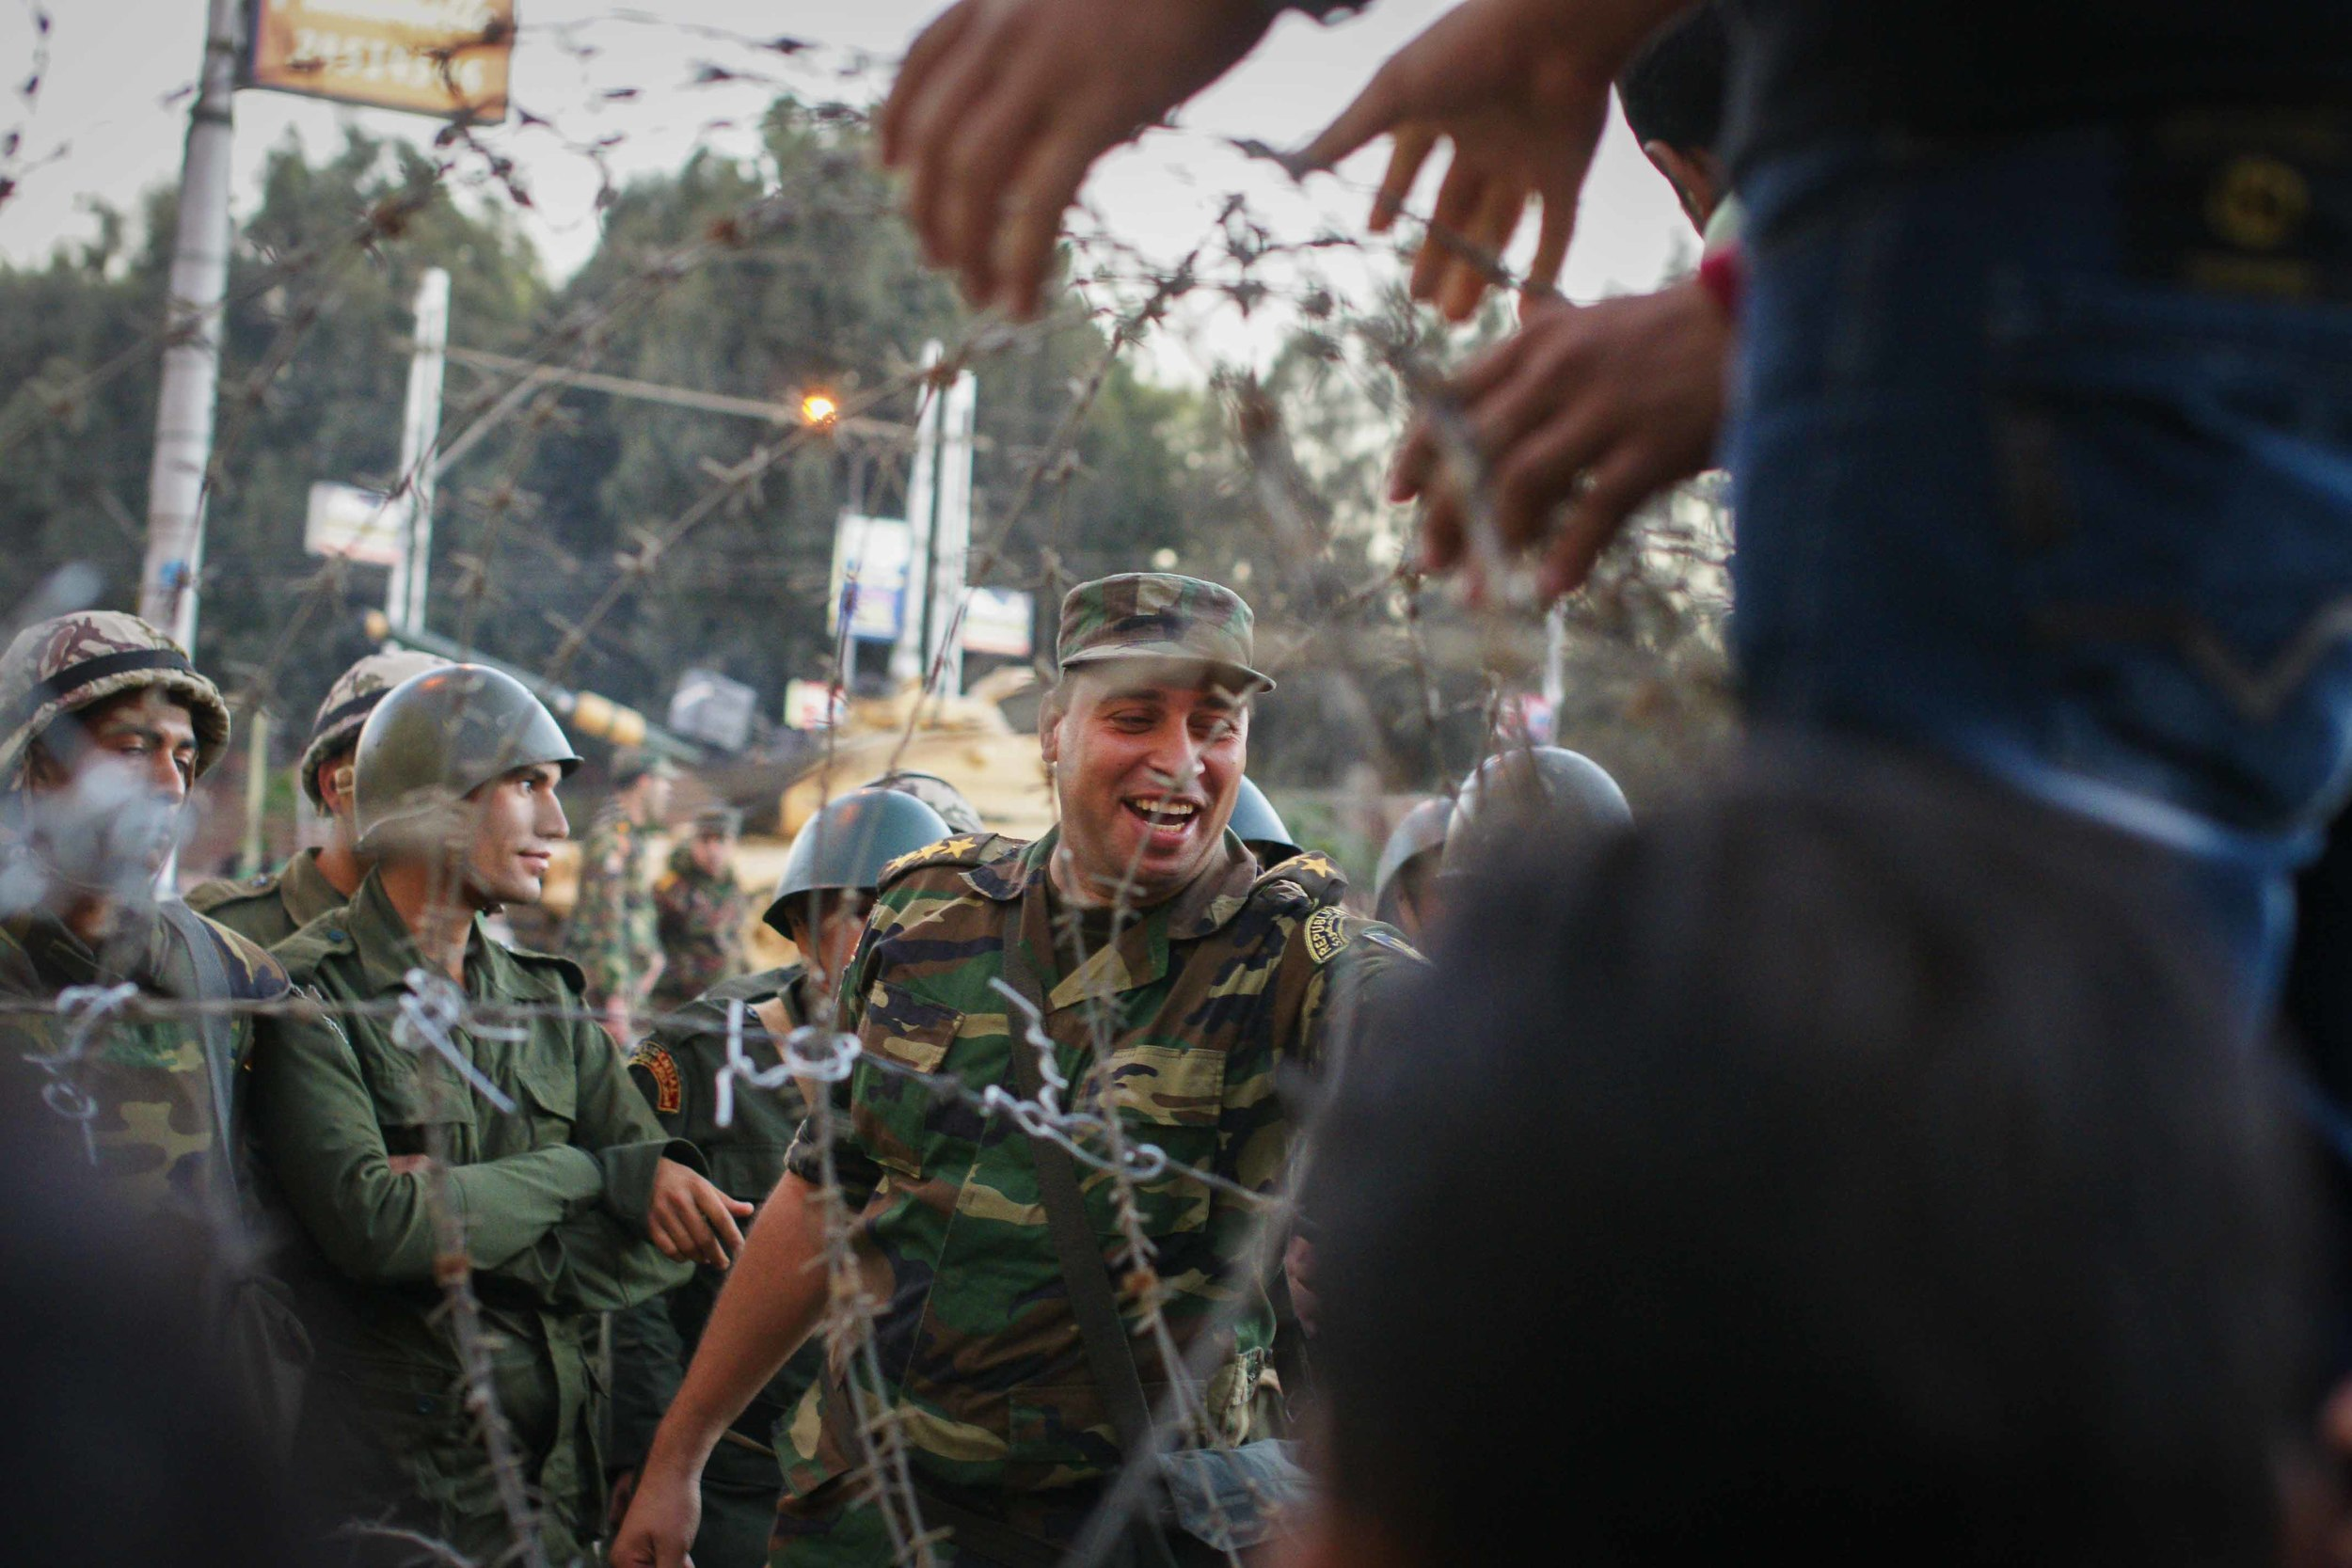 A member of the military jokes with a protestor as he is handed candy. In order to diffuse the tension, soldiers passed over Egyptian flags to the protestors, and protestors handed the soldiers candy or small items in return.